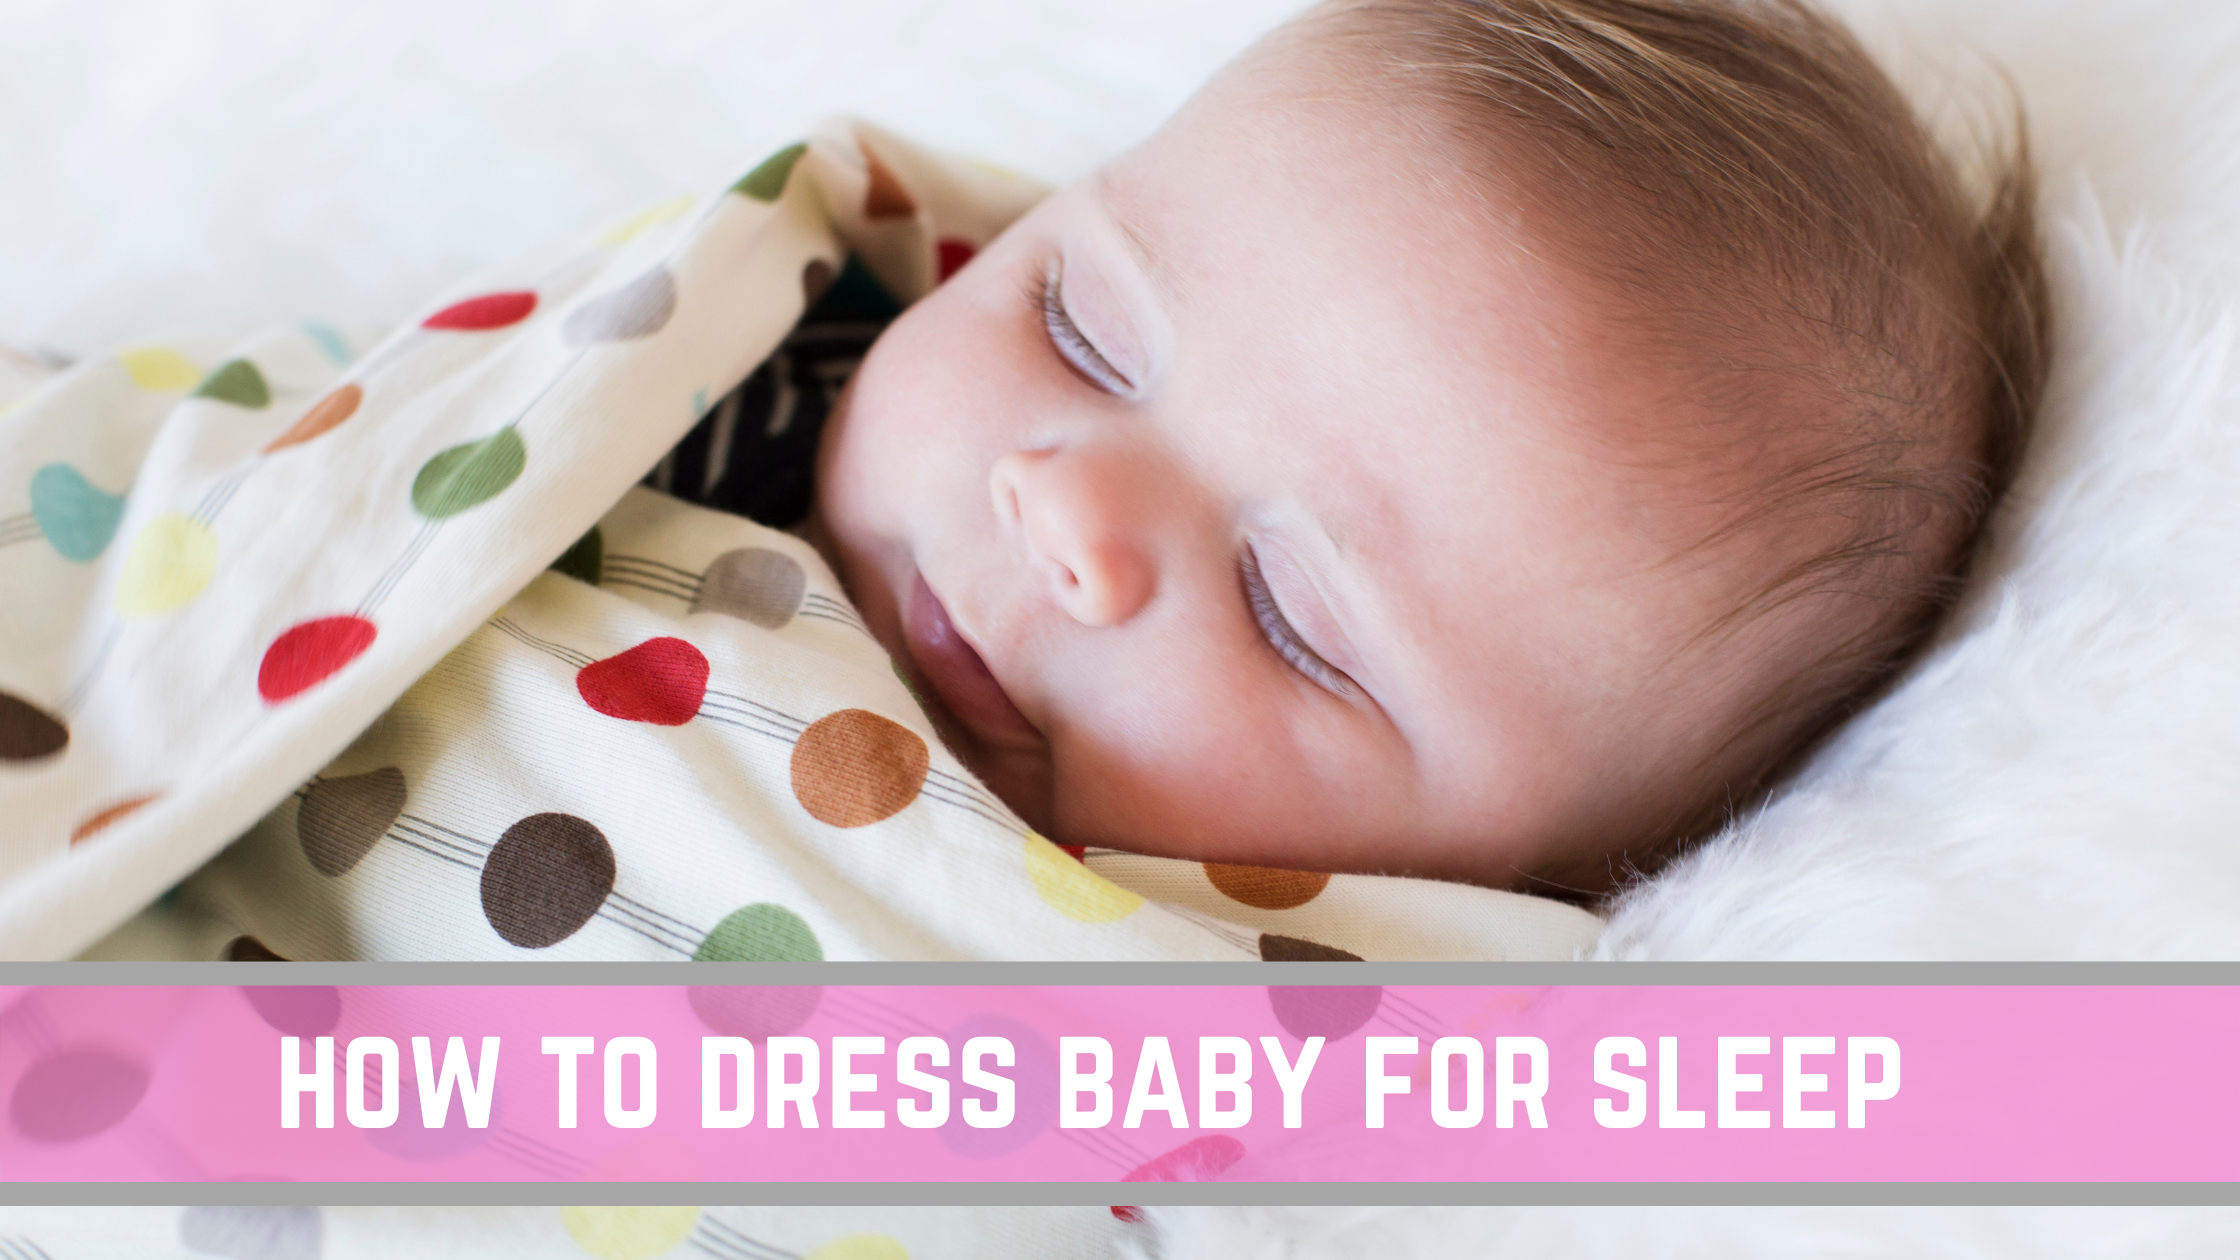 How to dress Baby for Sleep